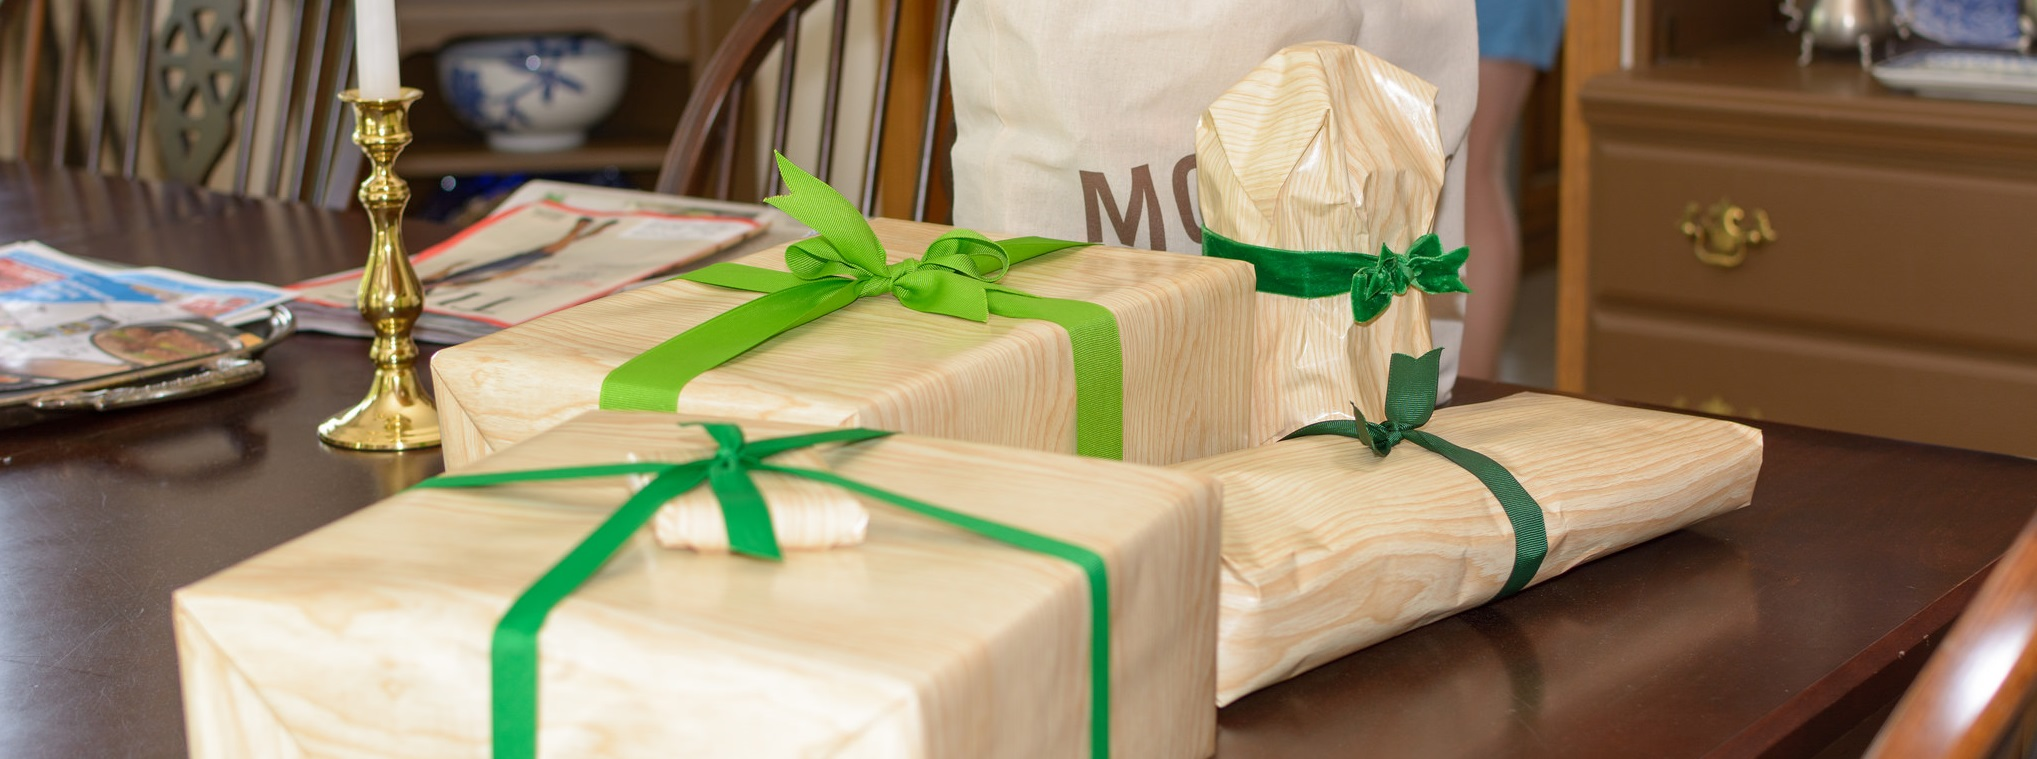 gift wrapped in brown wrapping paper with green ribbons